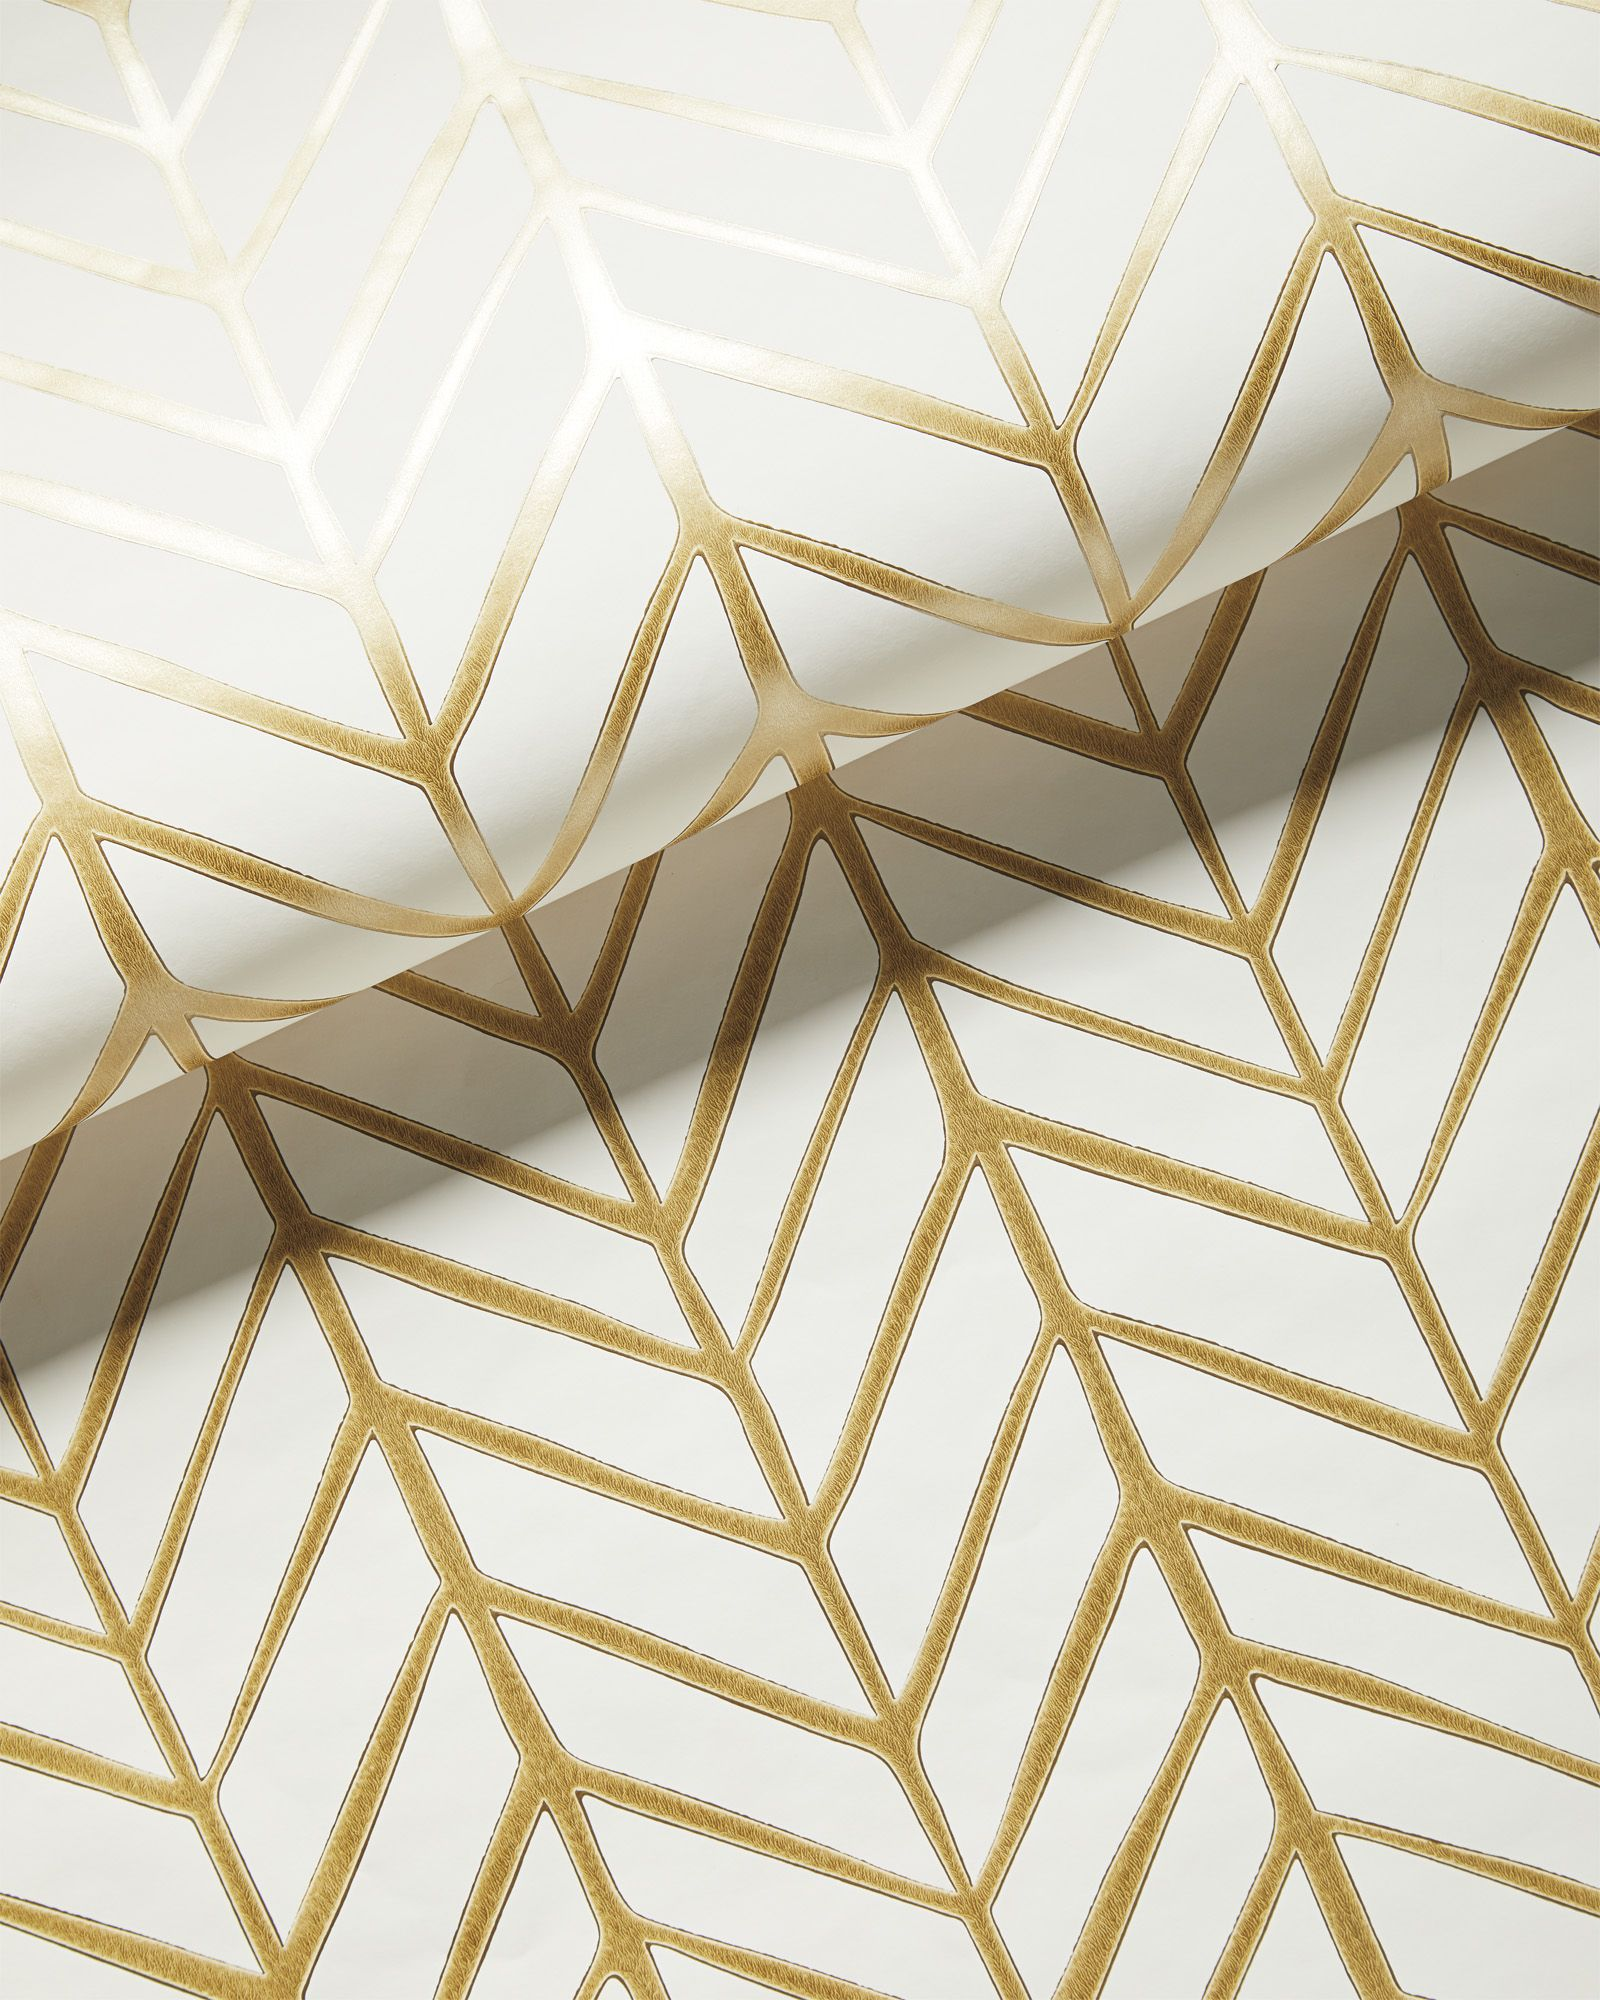 Feather Wallpaper Gold In 2021 Feather Wallpaper White And Gold Wallpaper Gold Bathroom Decor